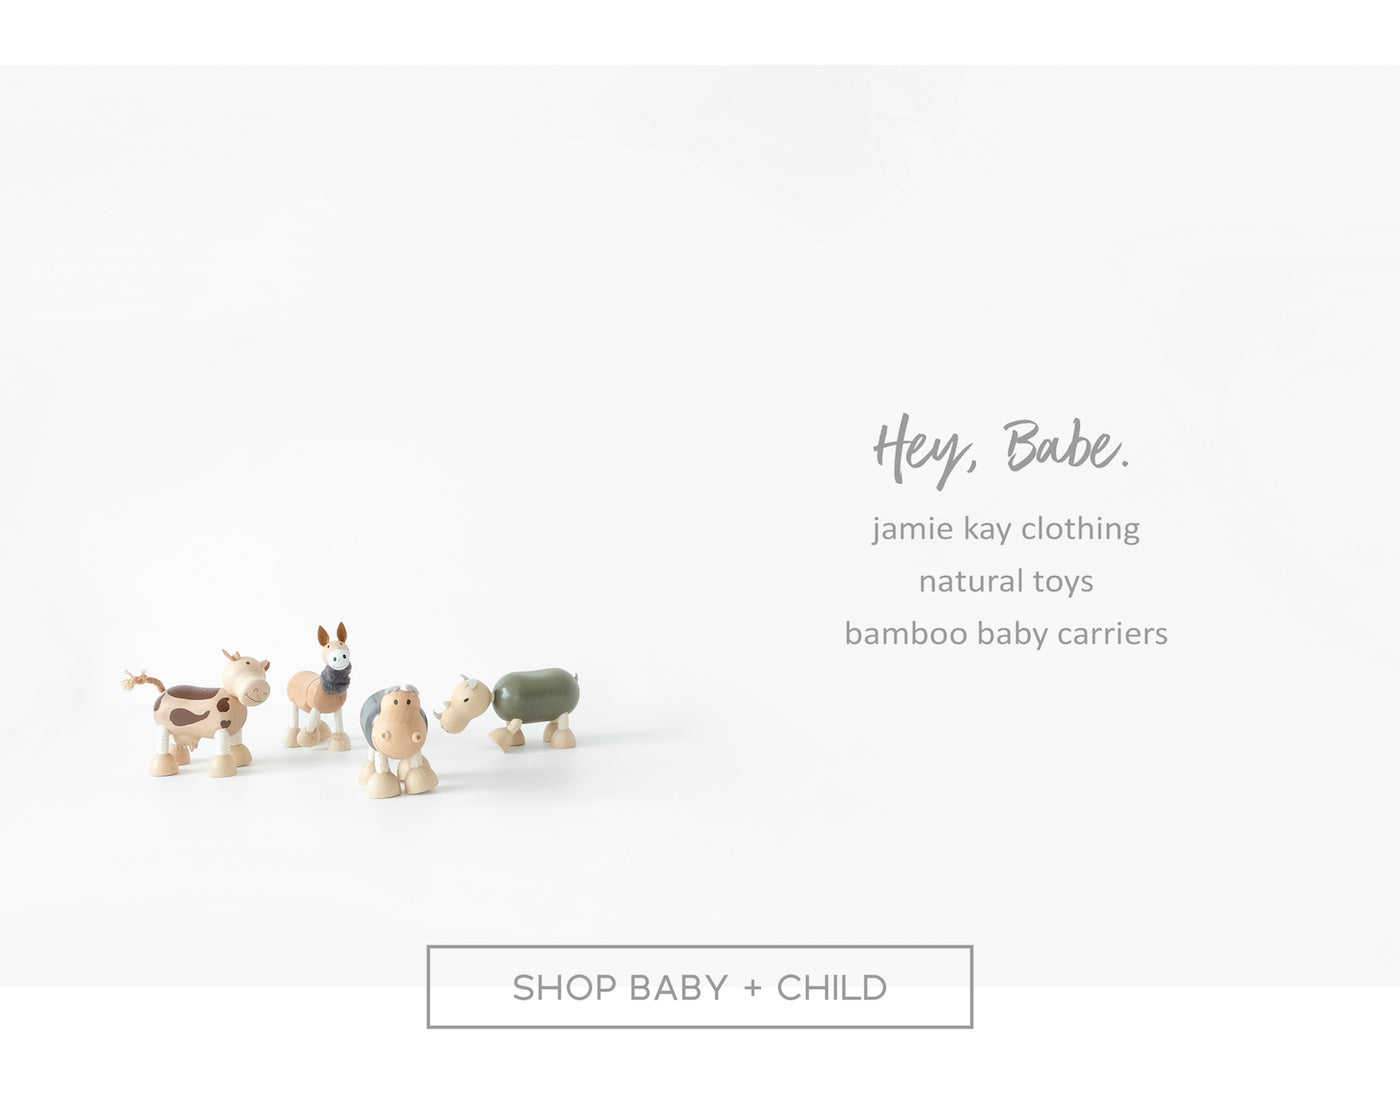 Baby + Child - Paper Plane Store